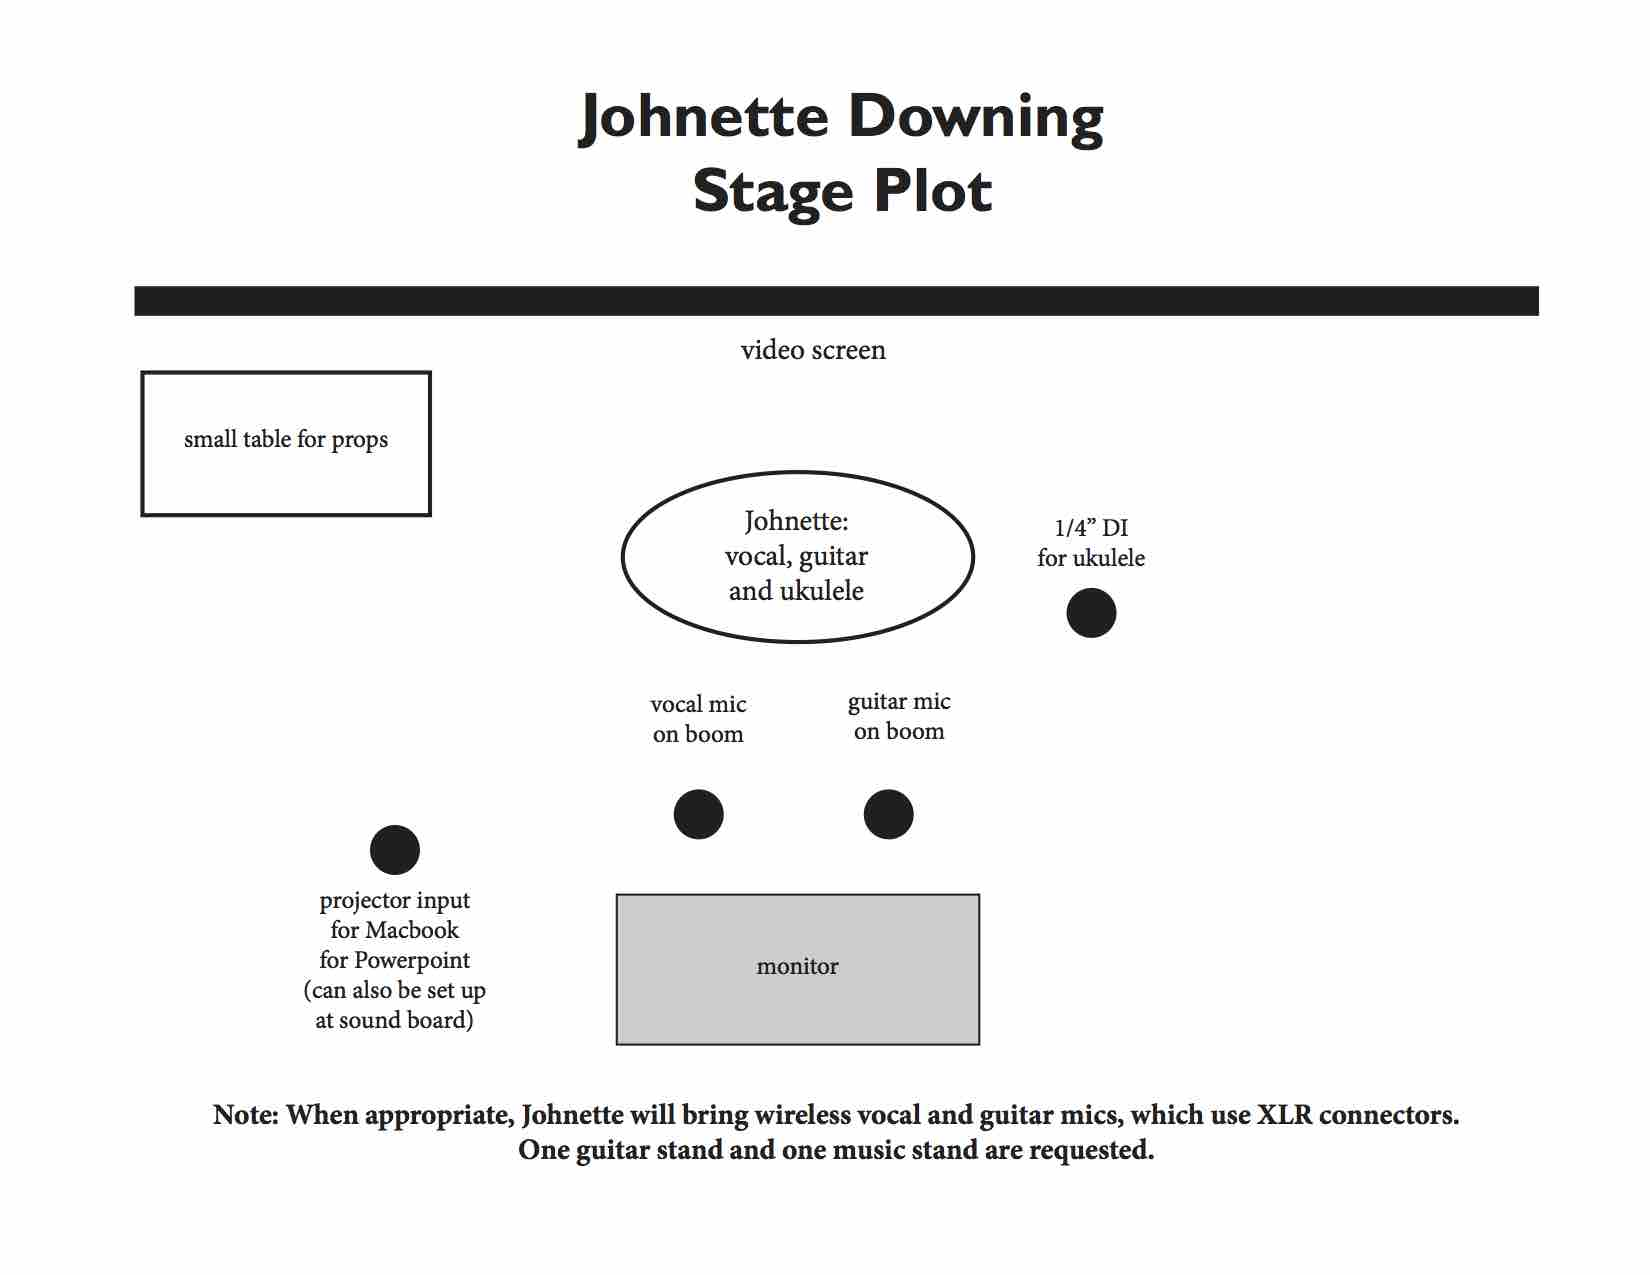 Johnette Downing Stage Plot